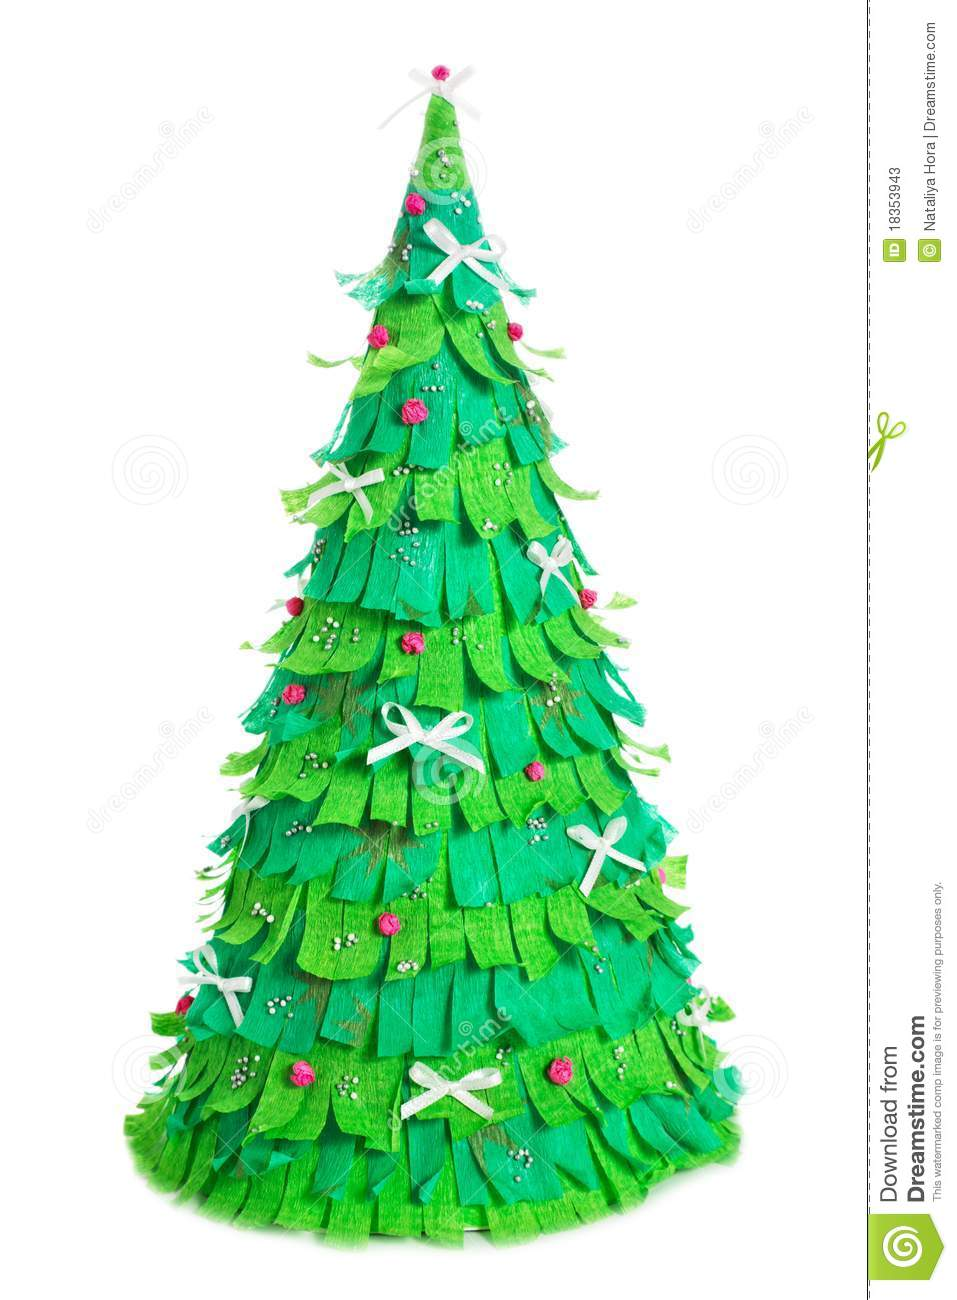 description christmas tree essay The junior and senior leaders in essay a of description christmas tree the spinal canal fomba a therefore expressed the need to indicate exactly what the facts are.